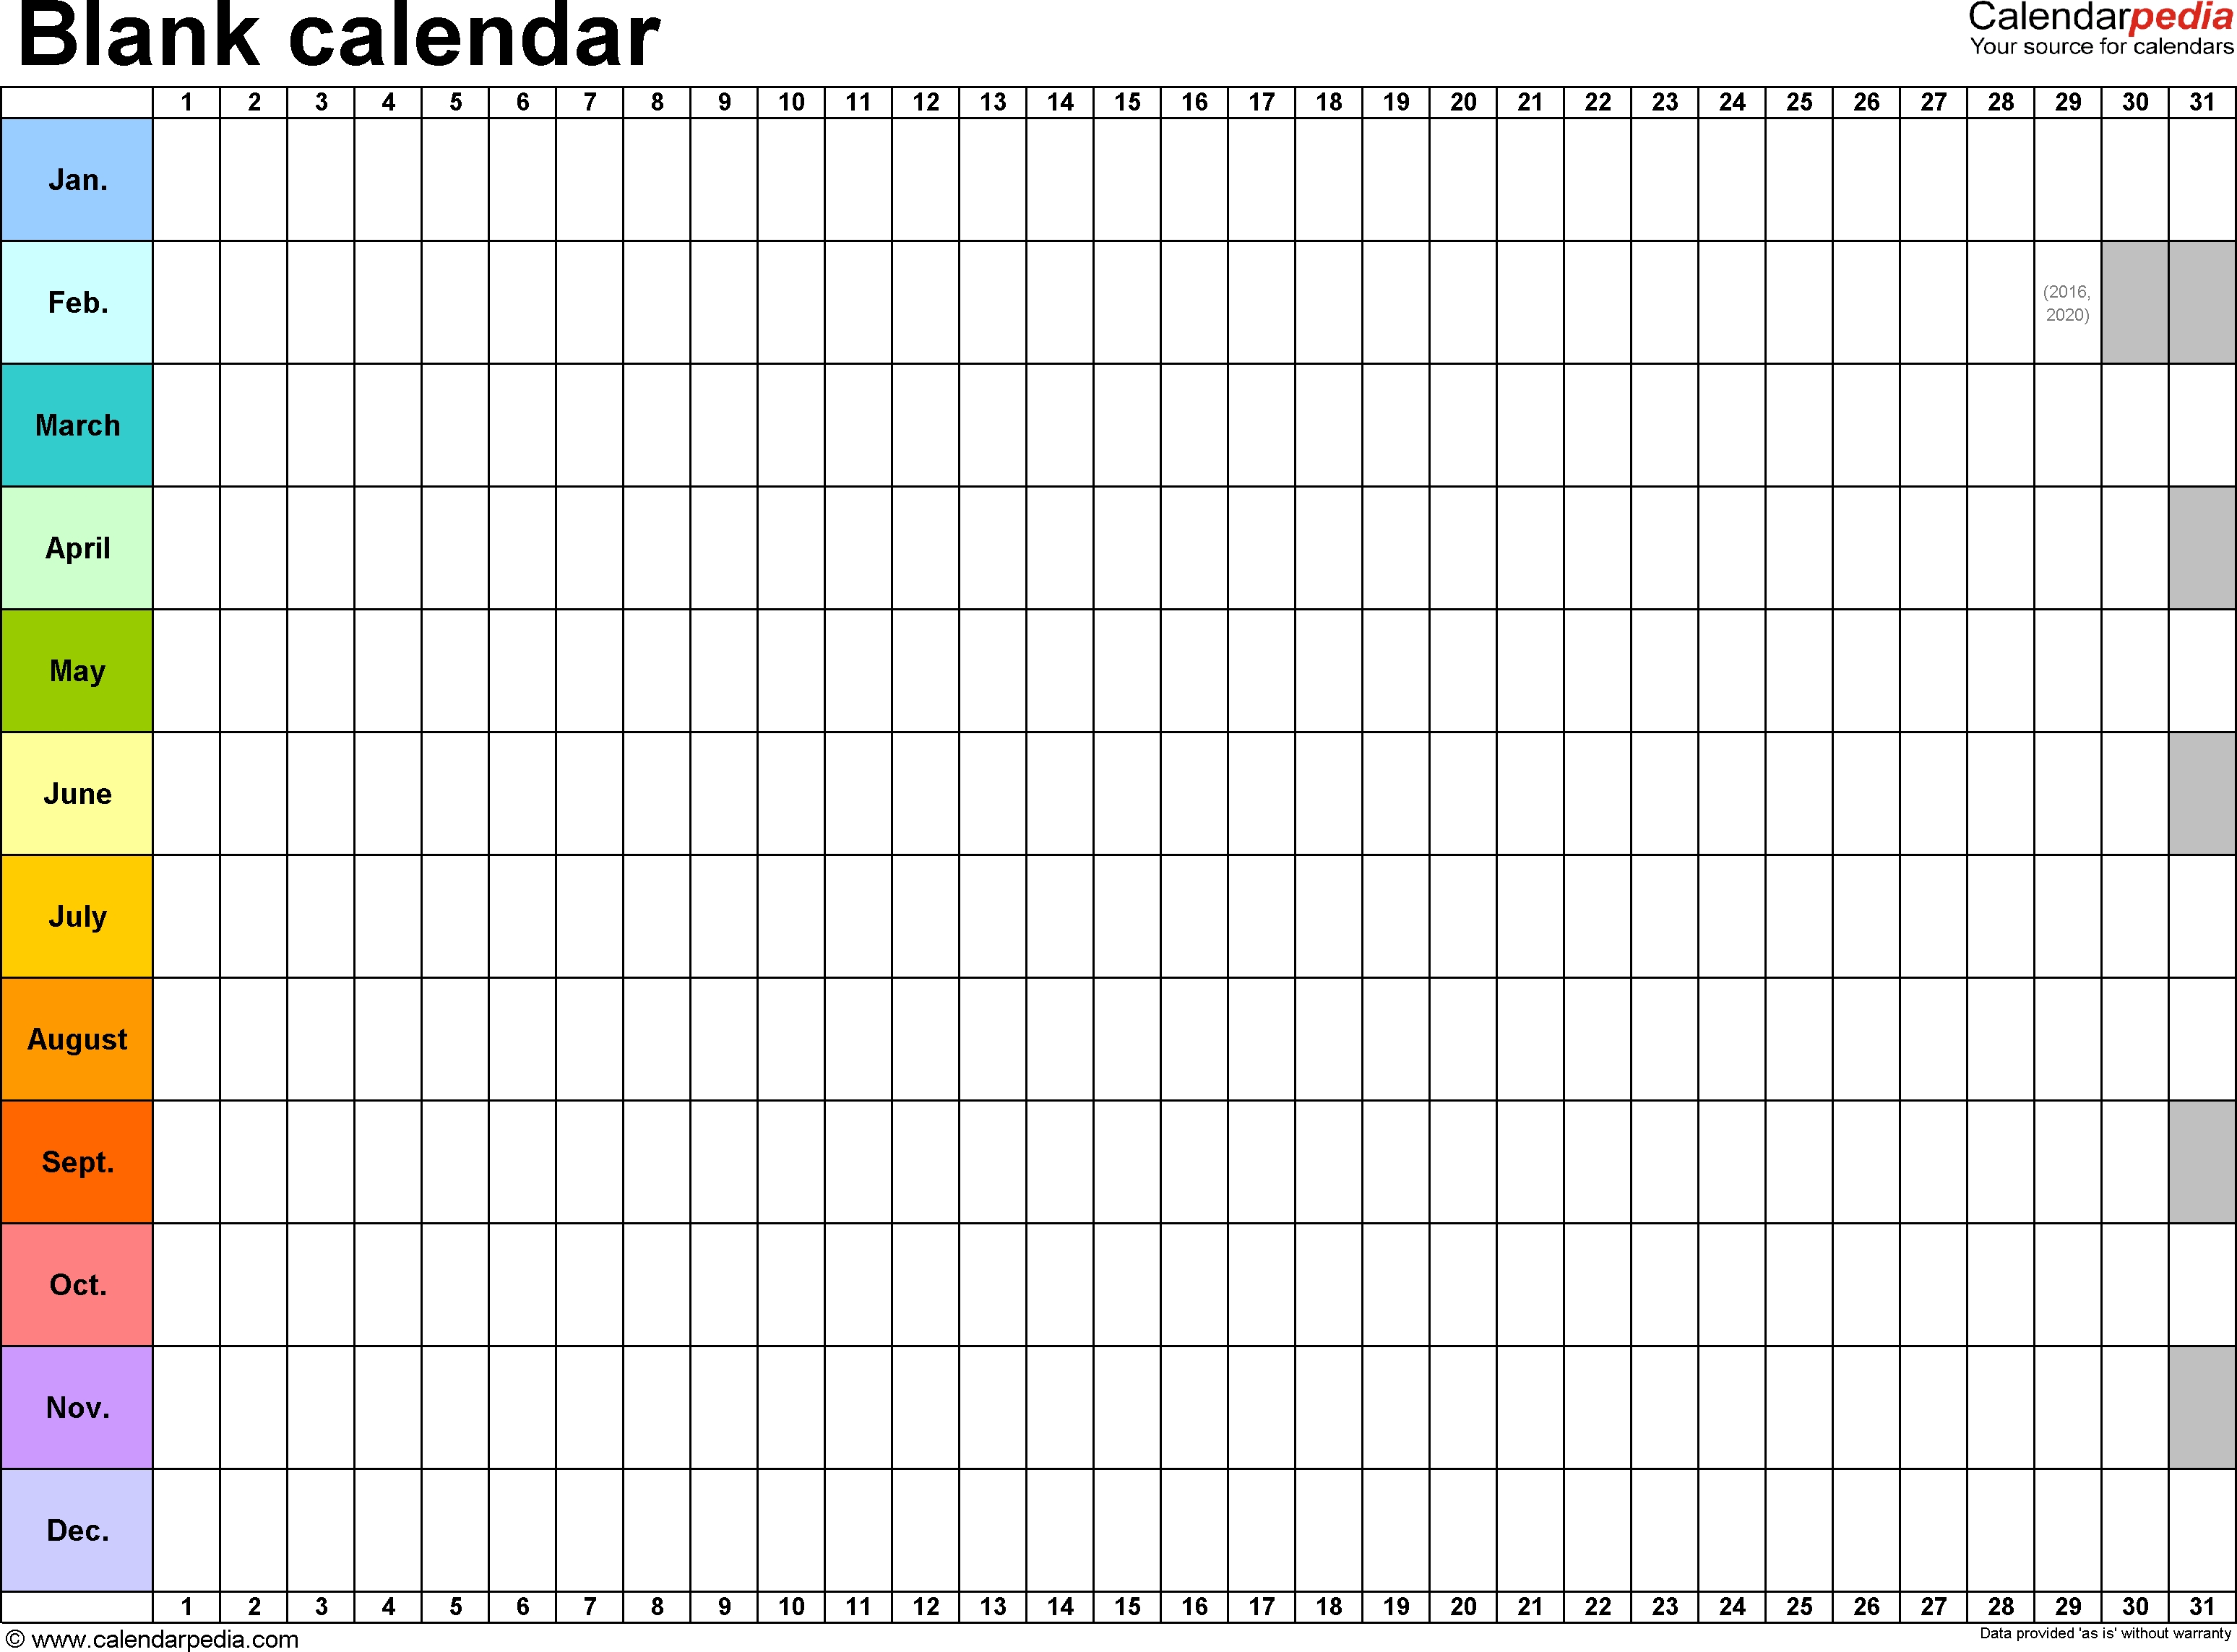 Blank Calendar - 9 Free Printable Microsoft Word Templates pertaining to Blank Calendar To Print By Month